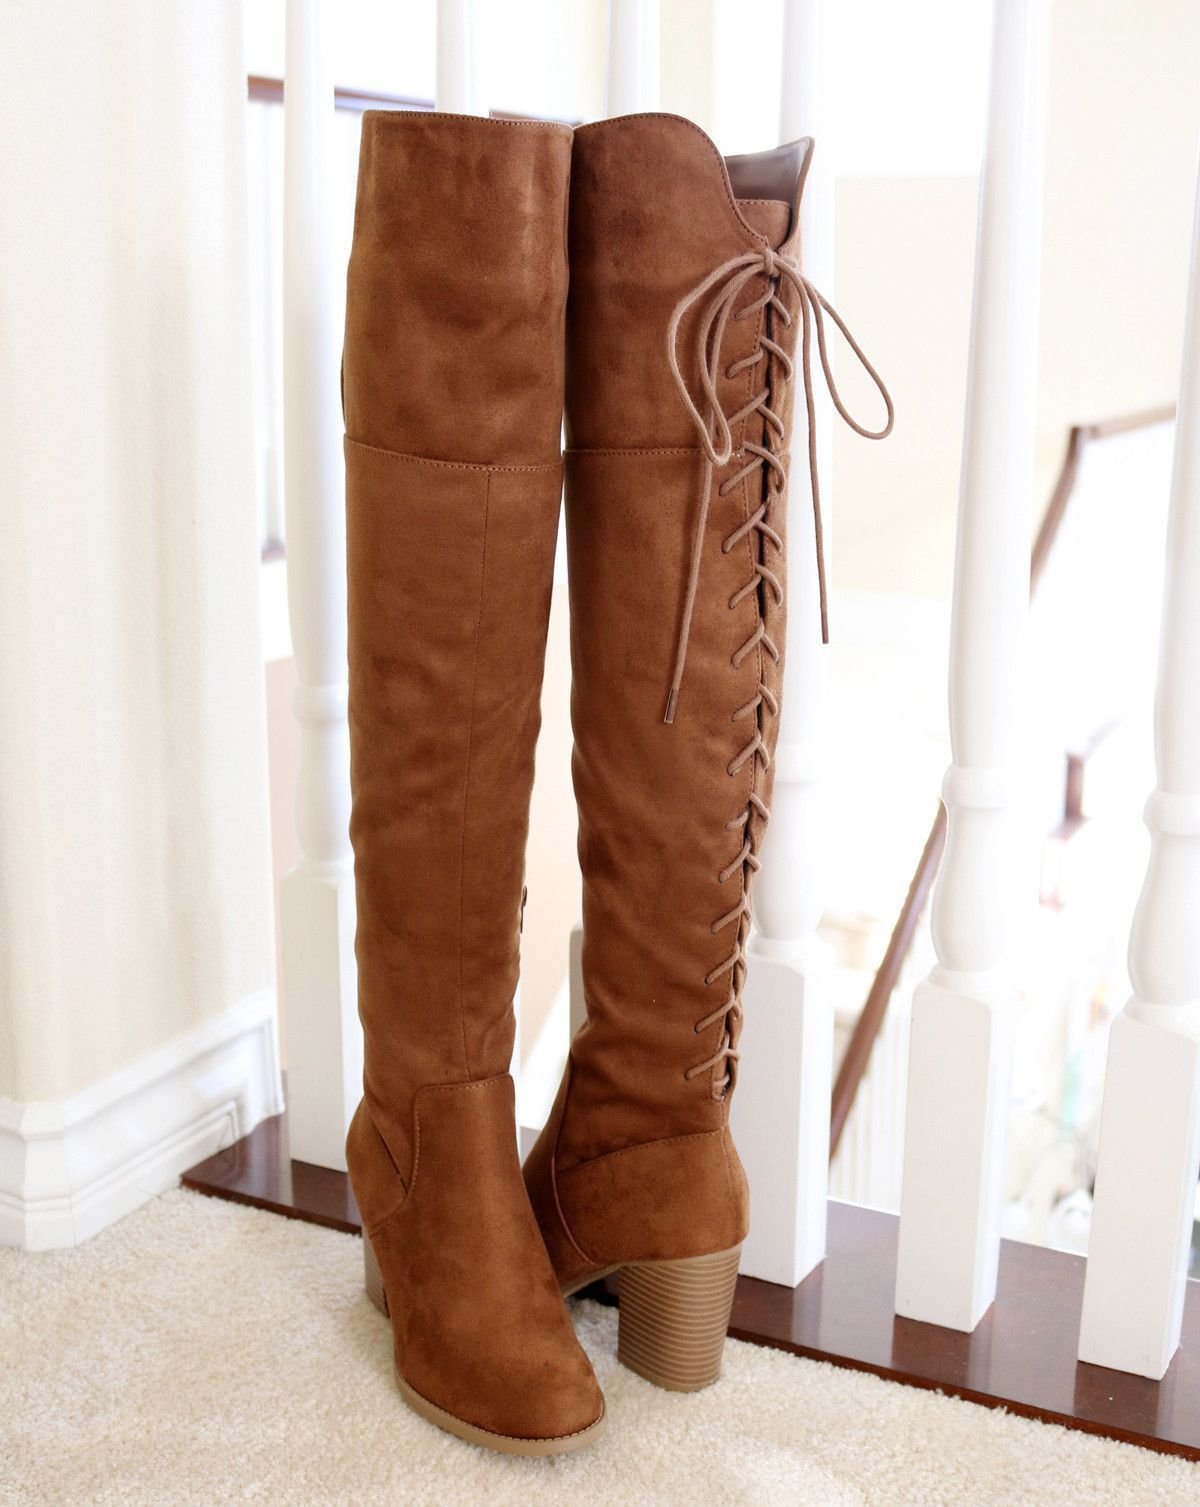 f7d0e764c57 Style   Over The Knee High Boots Heel Height   3 1 4